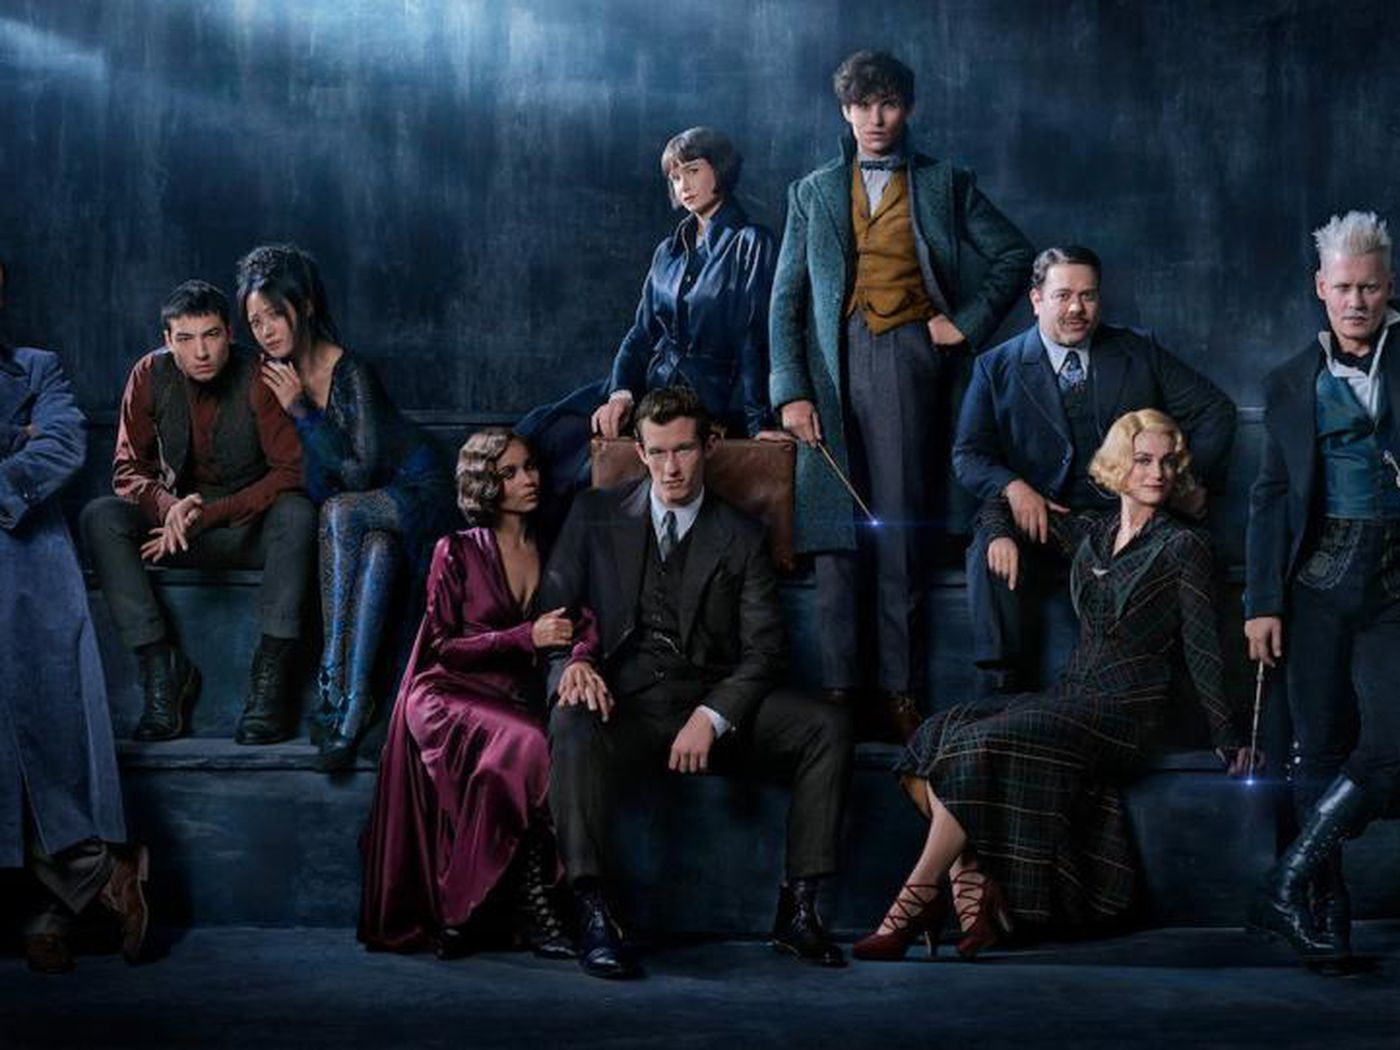 The title of the next Fantastic Beasts film teases an